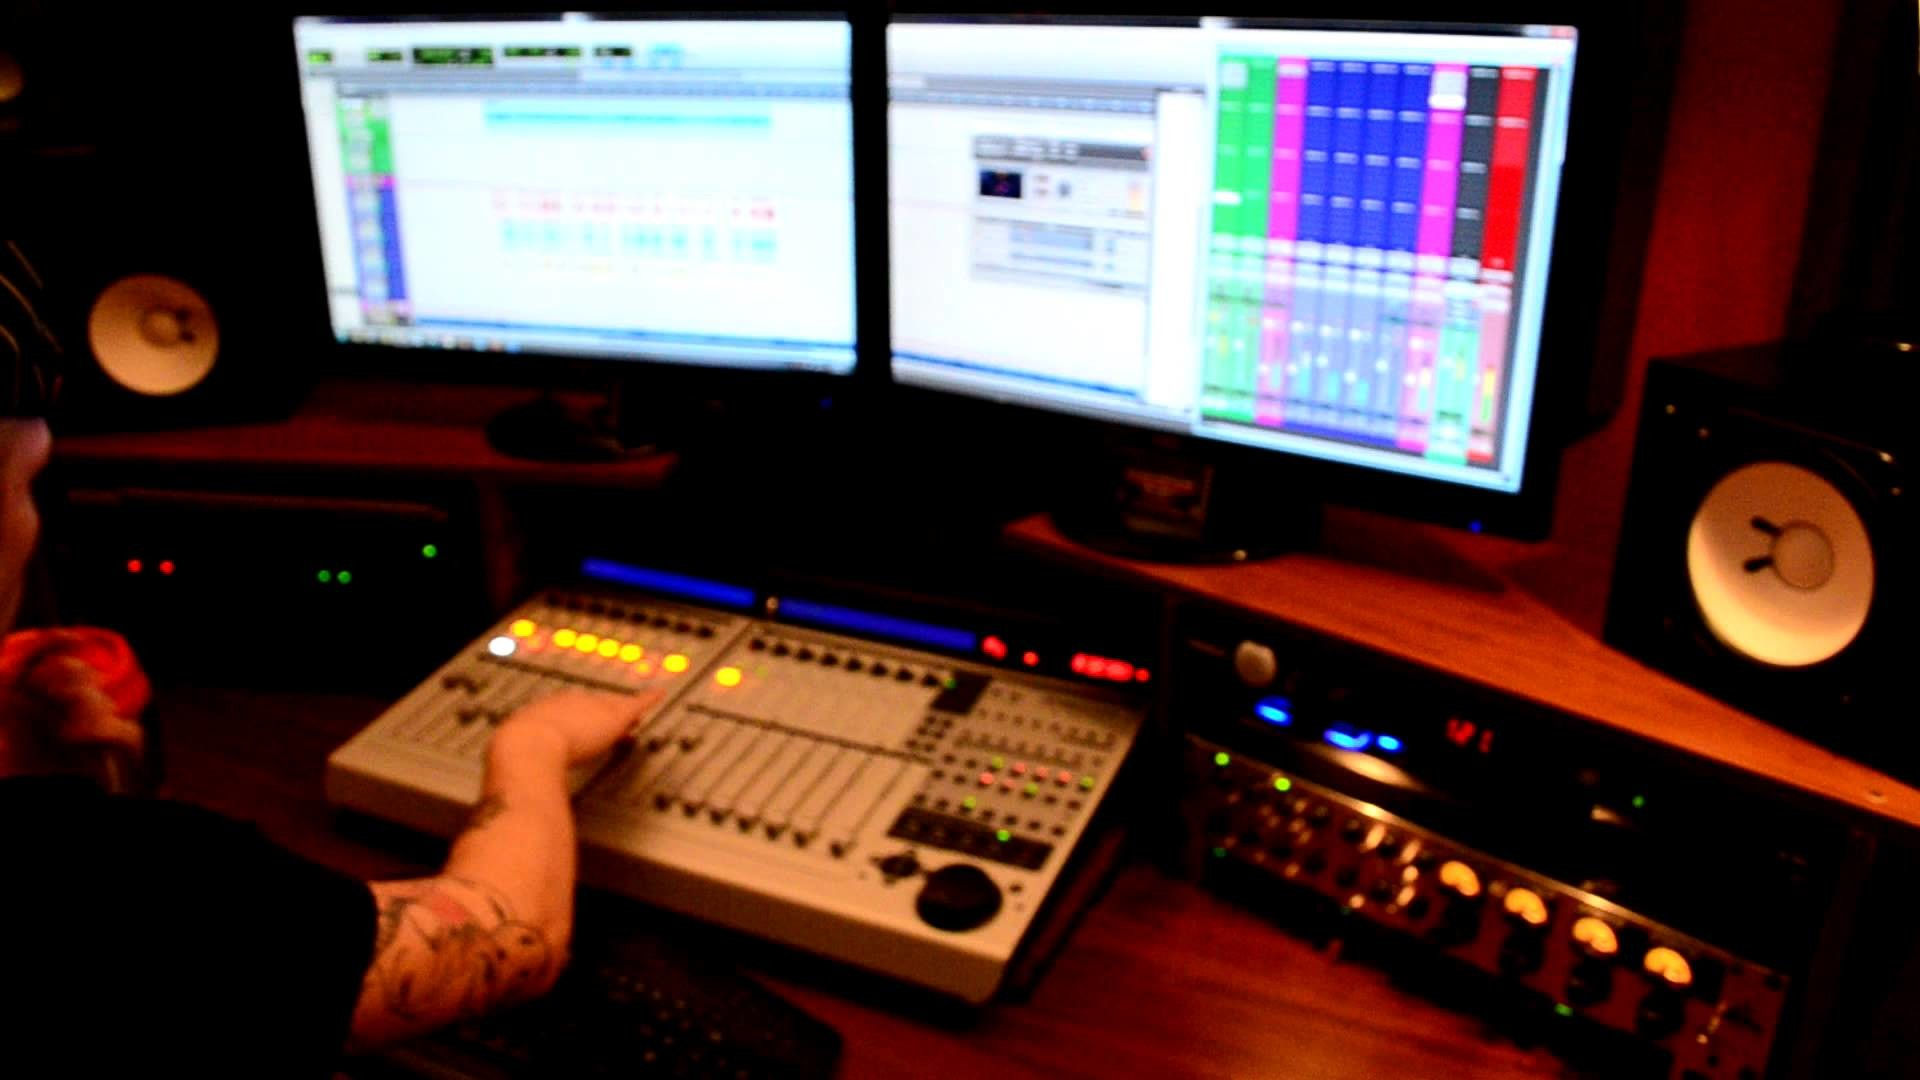 A Look inside Ninth Year Music Production Studios (NyM-Pro)